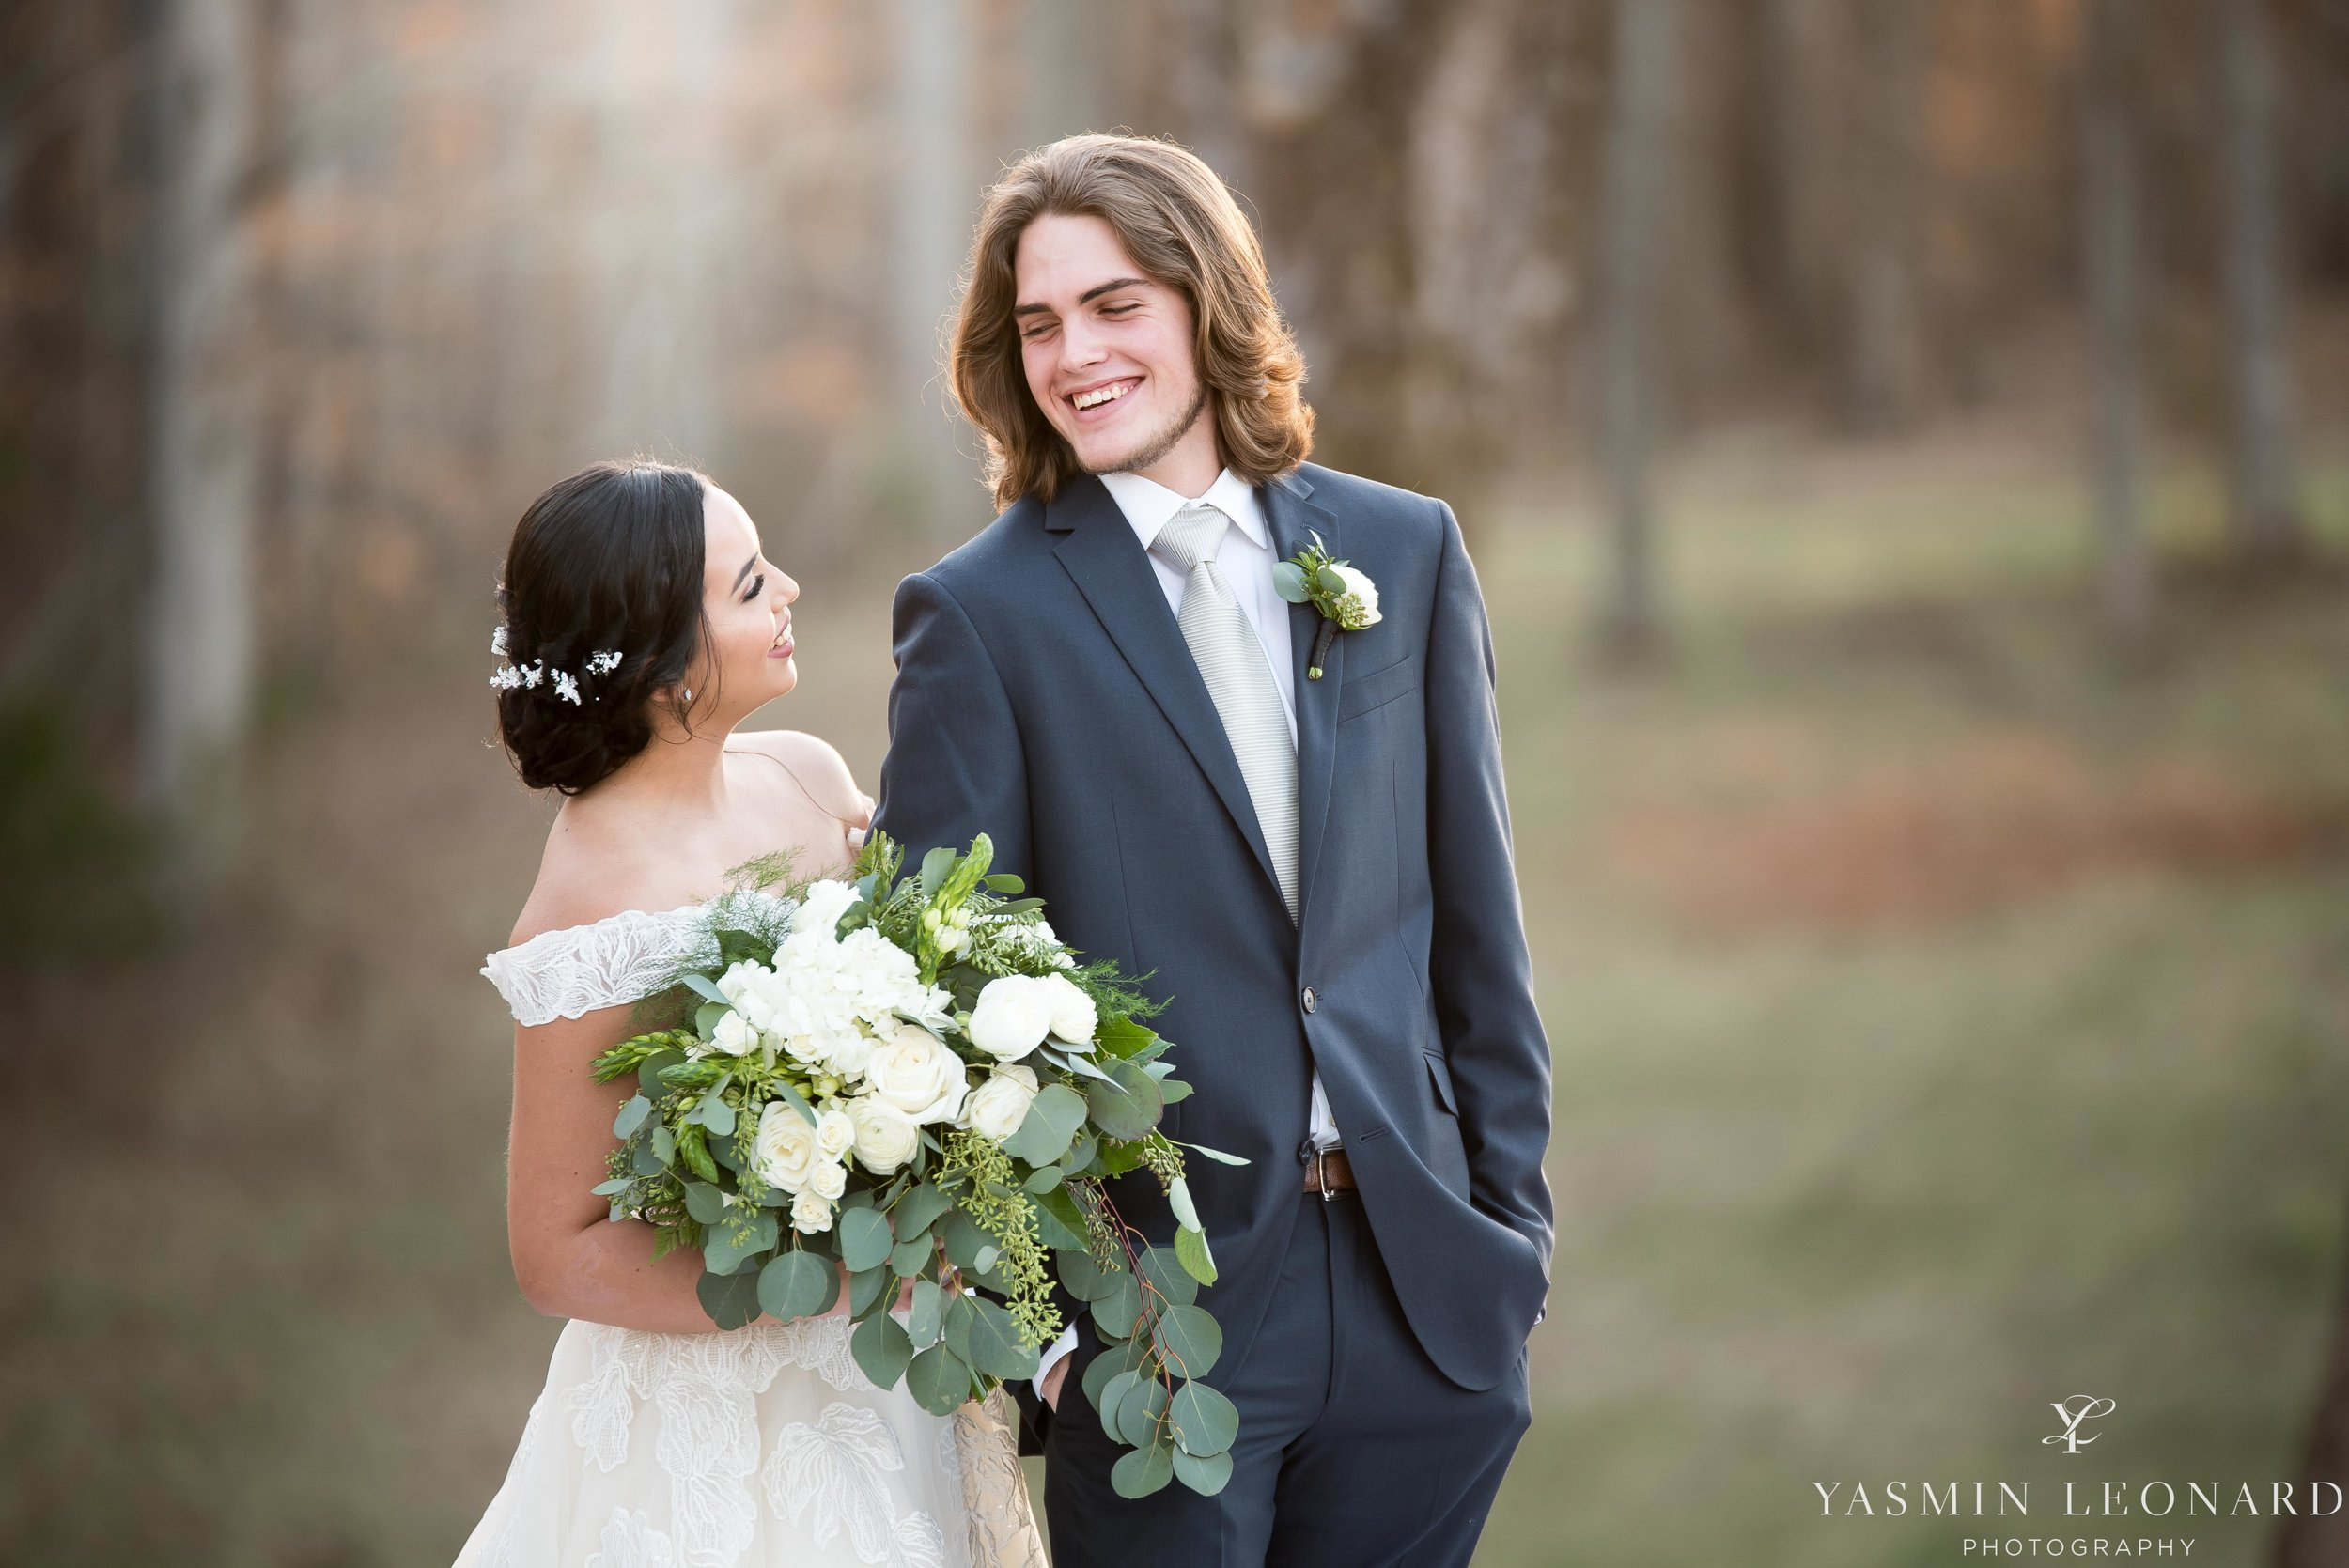 Old Homeplace Vineyard - Grits and Glitter - Dashing Dames Bridal Boutique - Just Priceless - Yasmin Leonard Photography - High Point Weddings - NC Weddings - NC Wedding Venues - High Point Jewelers - NC Wines - NC Vineyards - Cupcake Cuties-100.jpg